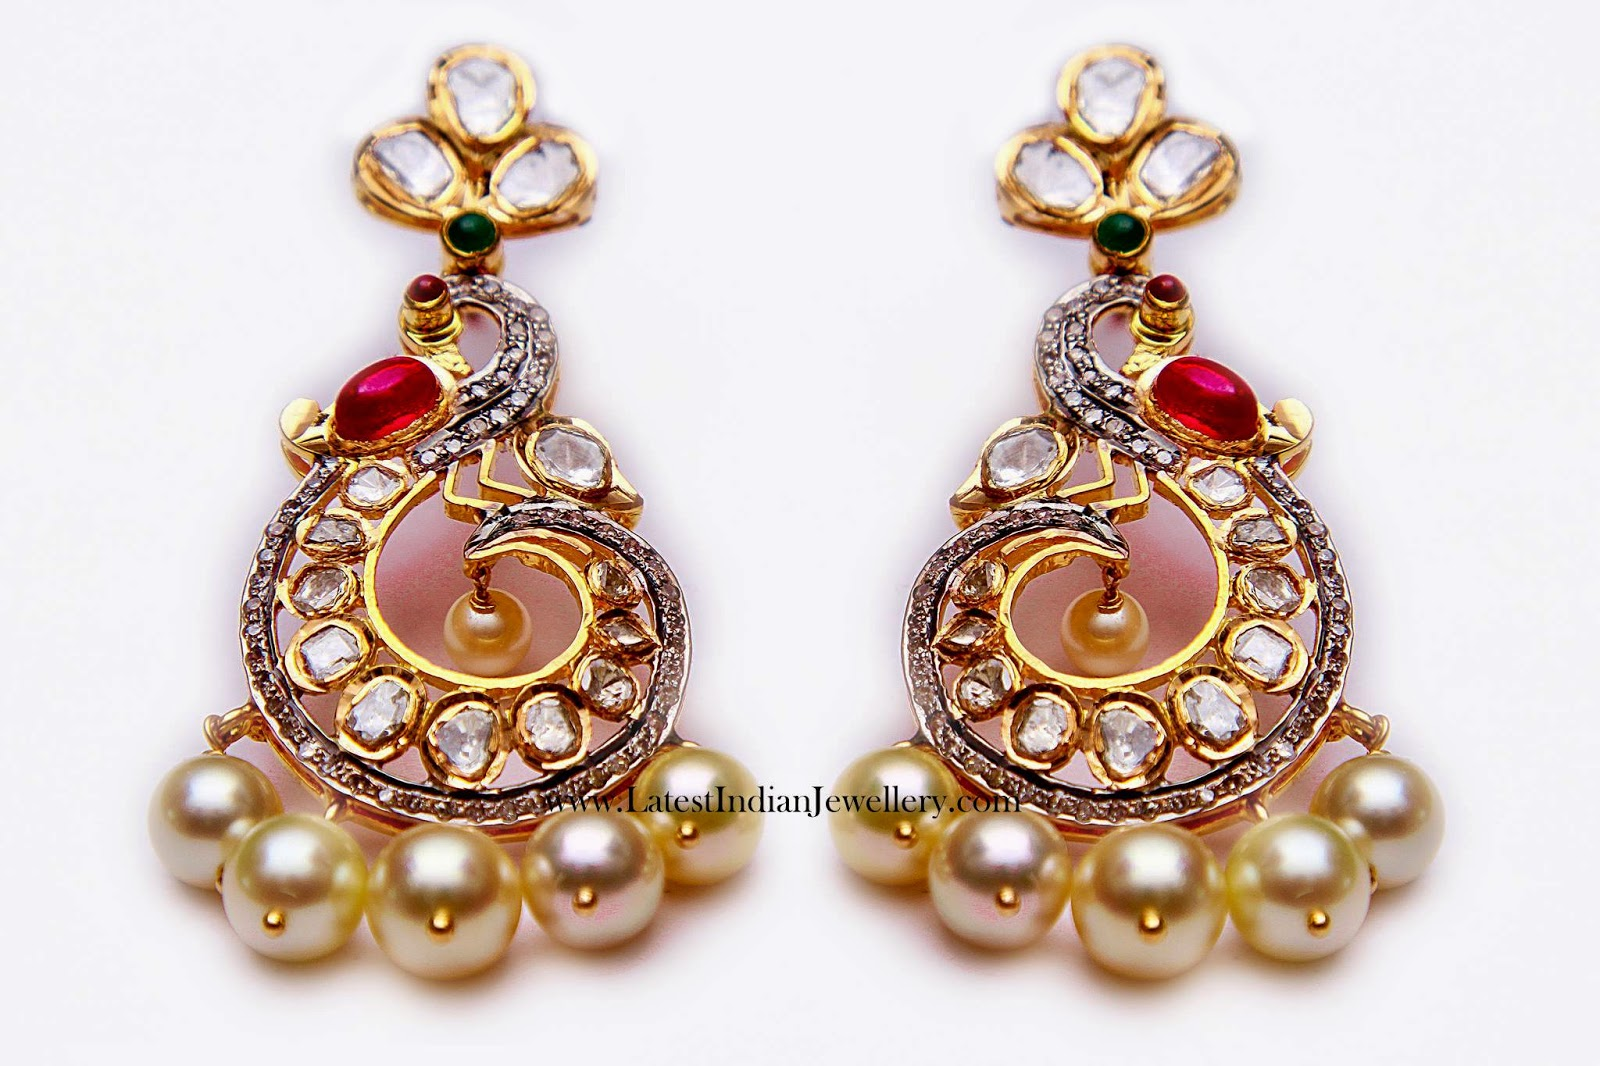 balis earrings peacock design chand bali earrings 7164